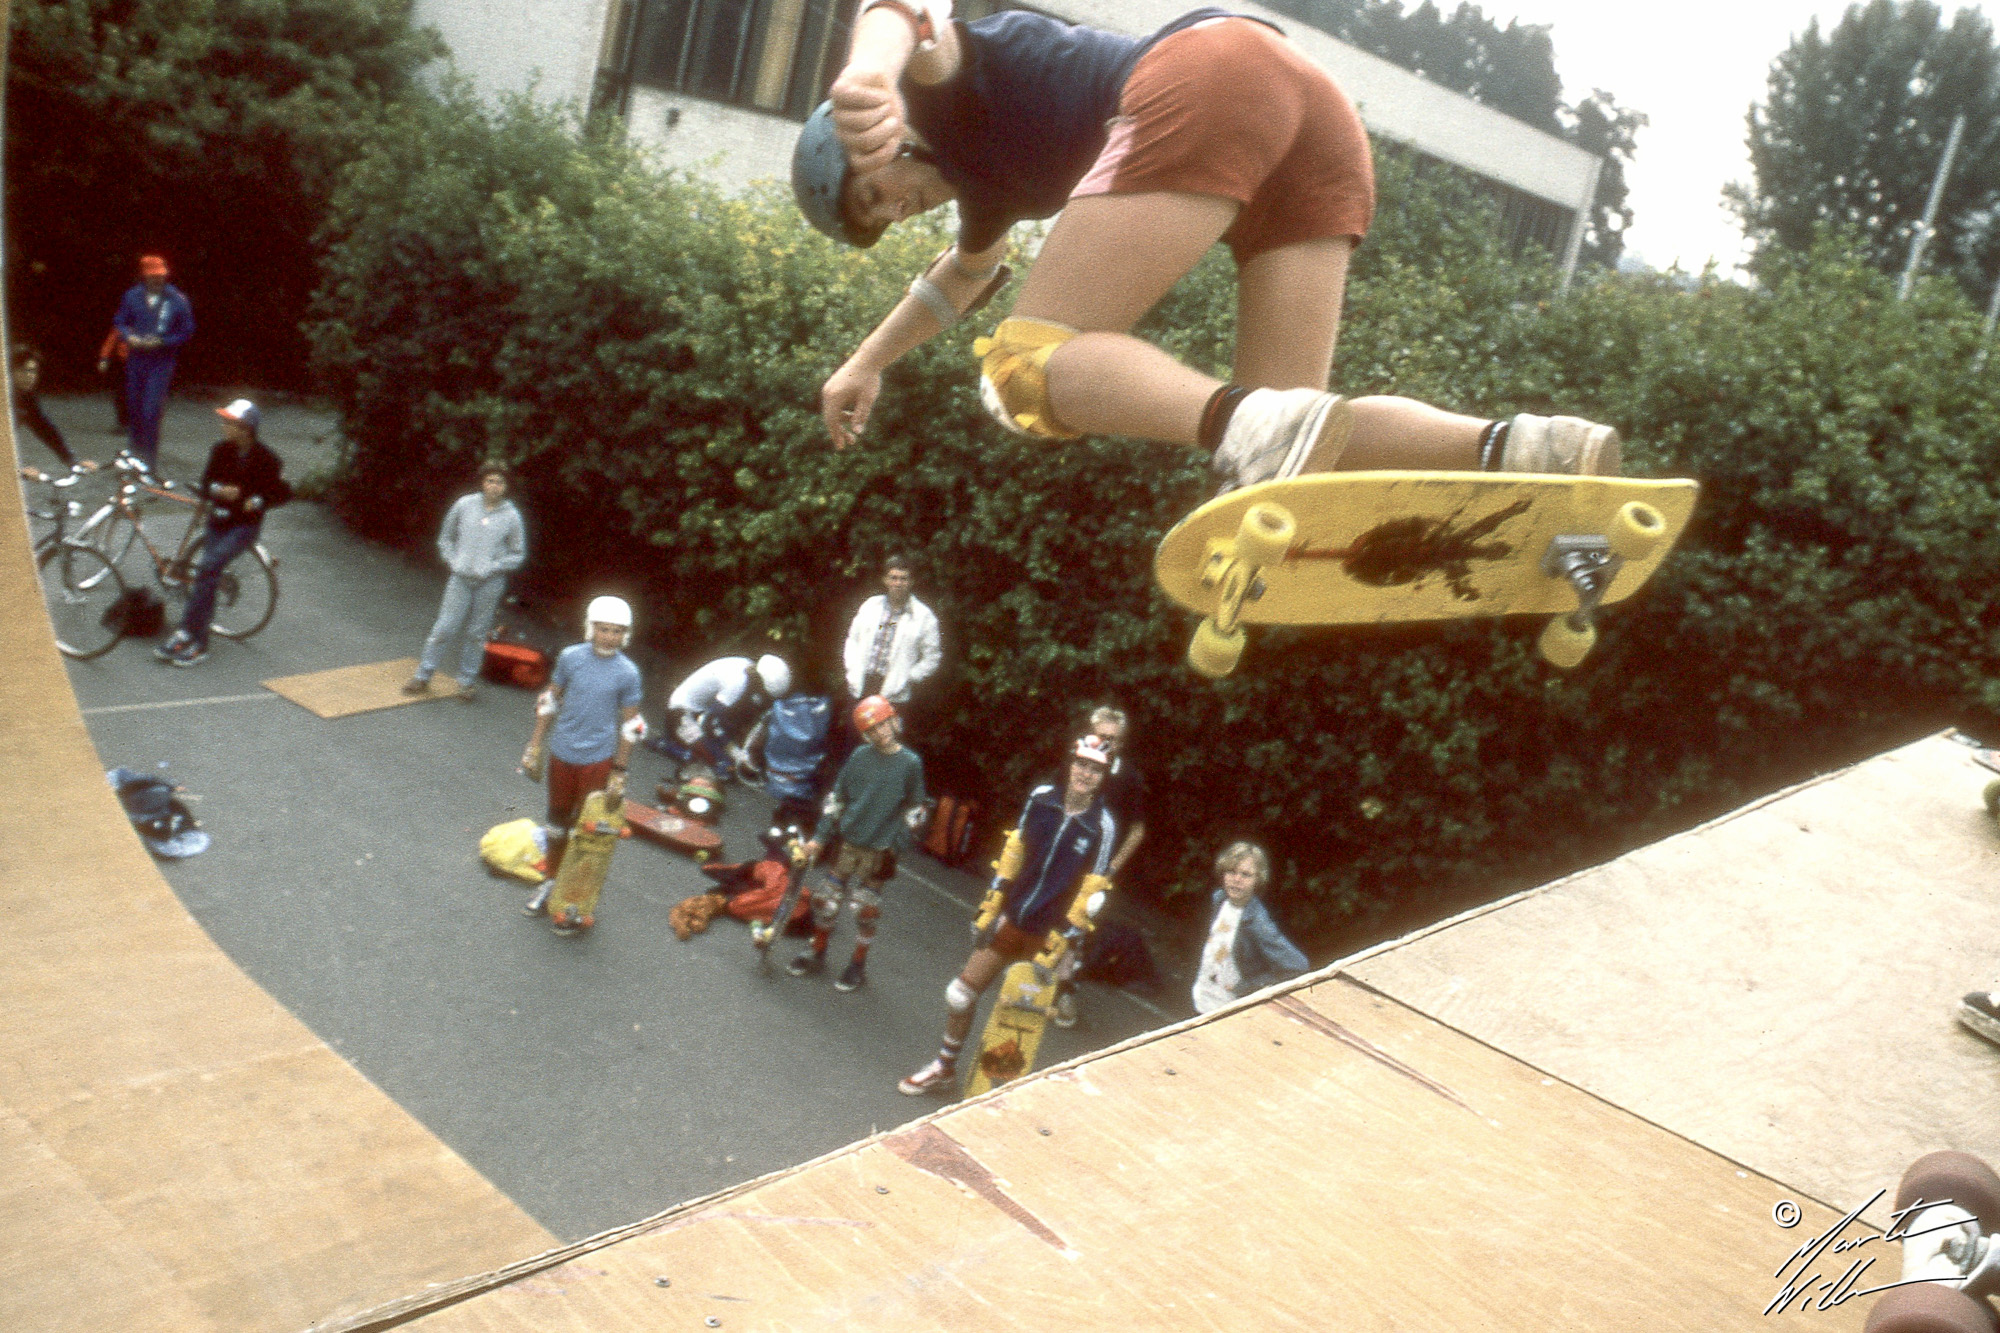 Hans Göthberg, Backside ollie, SM, Täby 1981